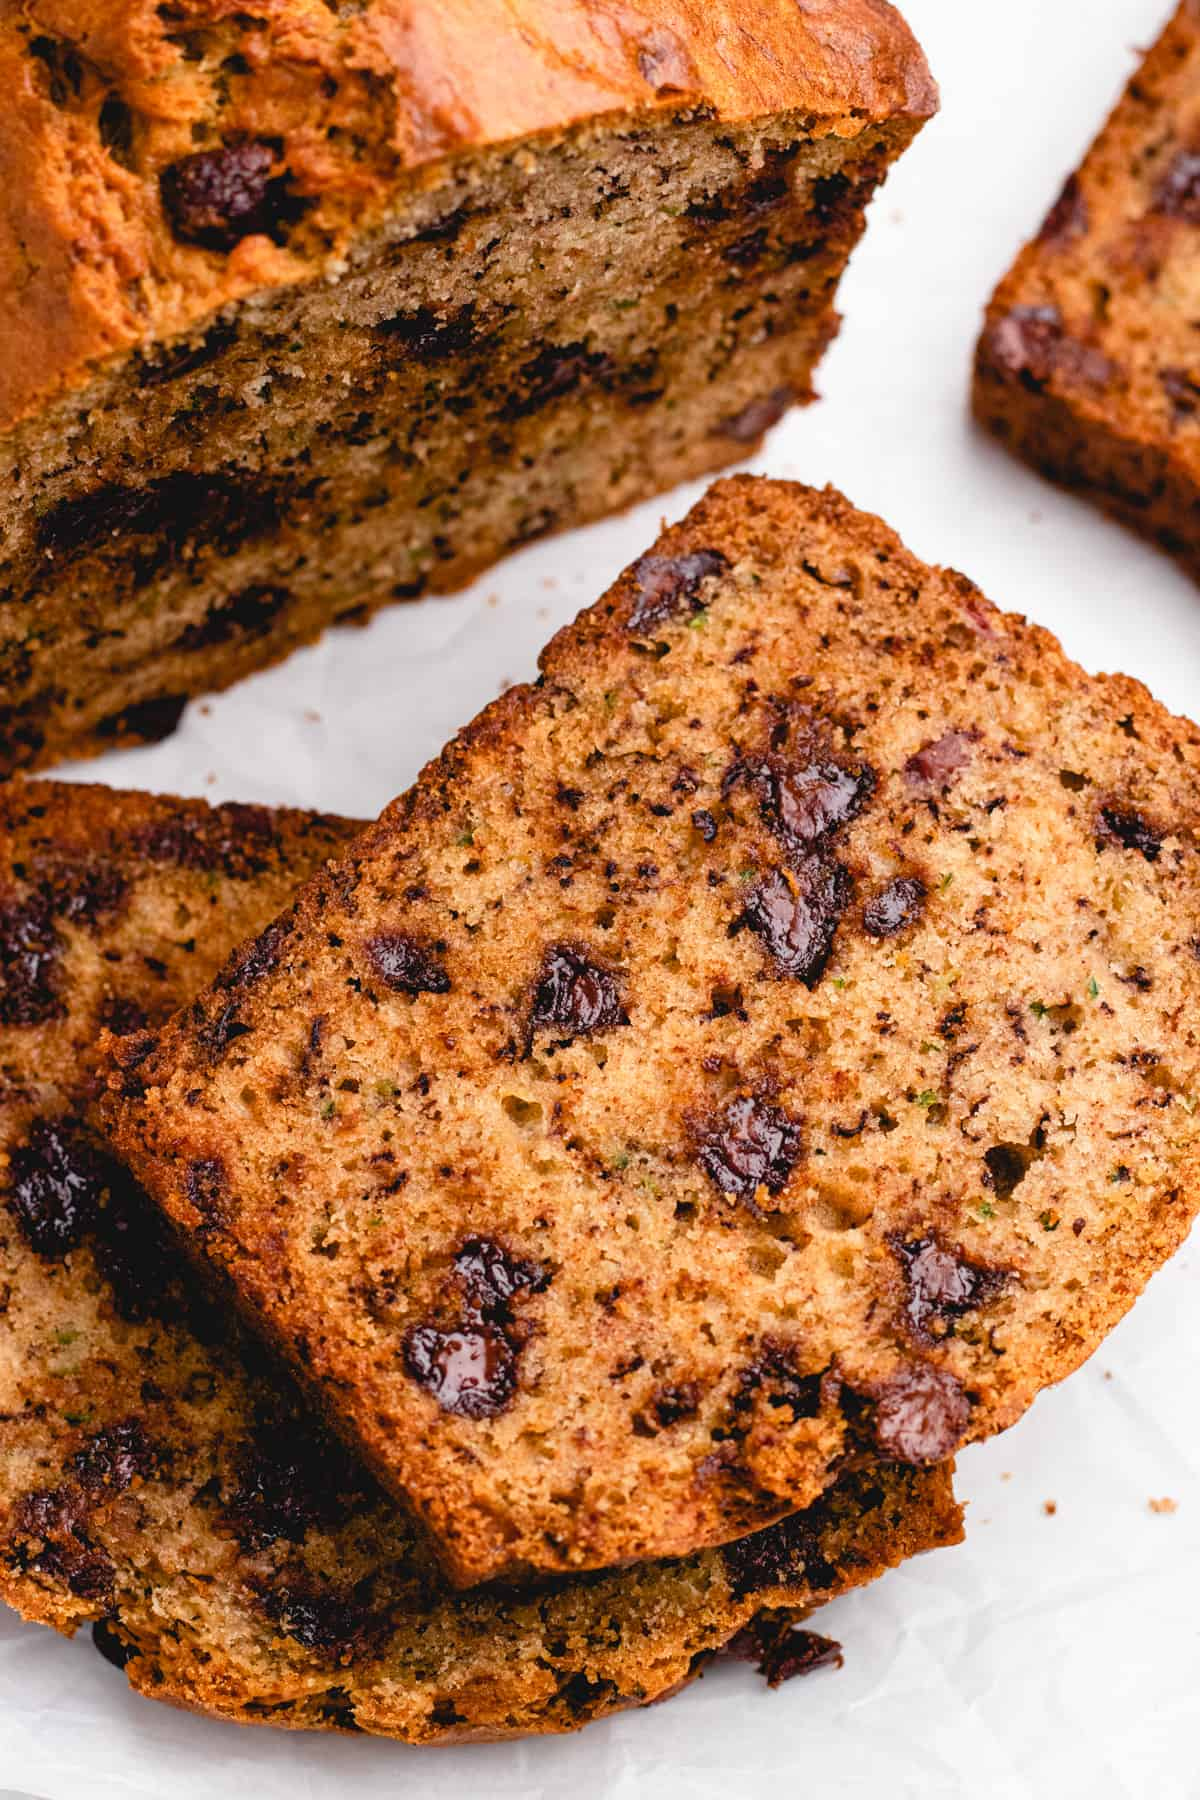 Sliced zucchini banana bread with chocolate chips.